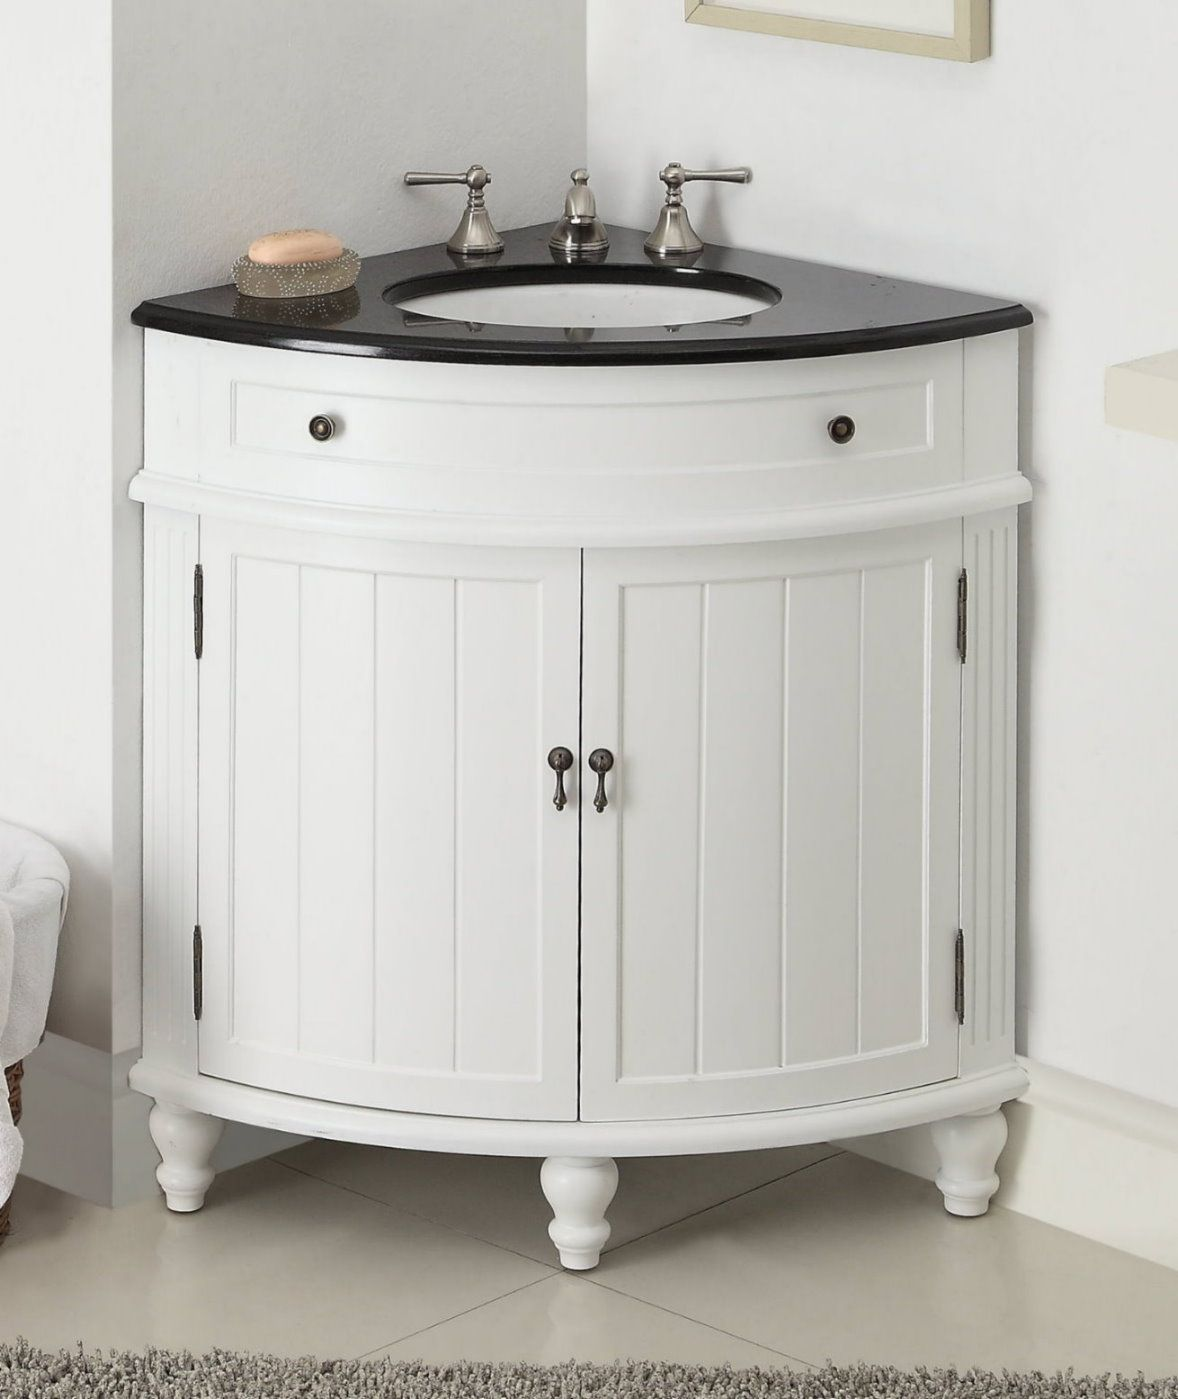 Small Bathroom Vanity With Sink 24 Cottage Style Thomasville Bathroom Sink Vanity Model Cf